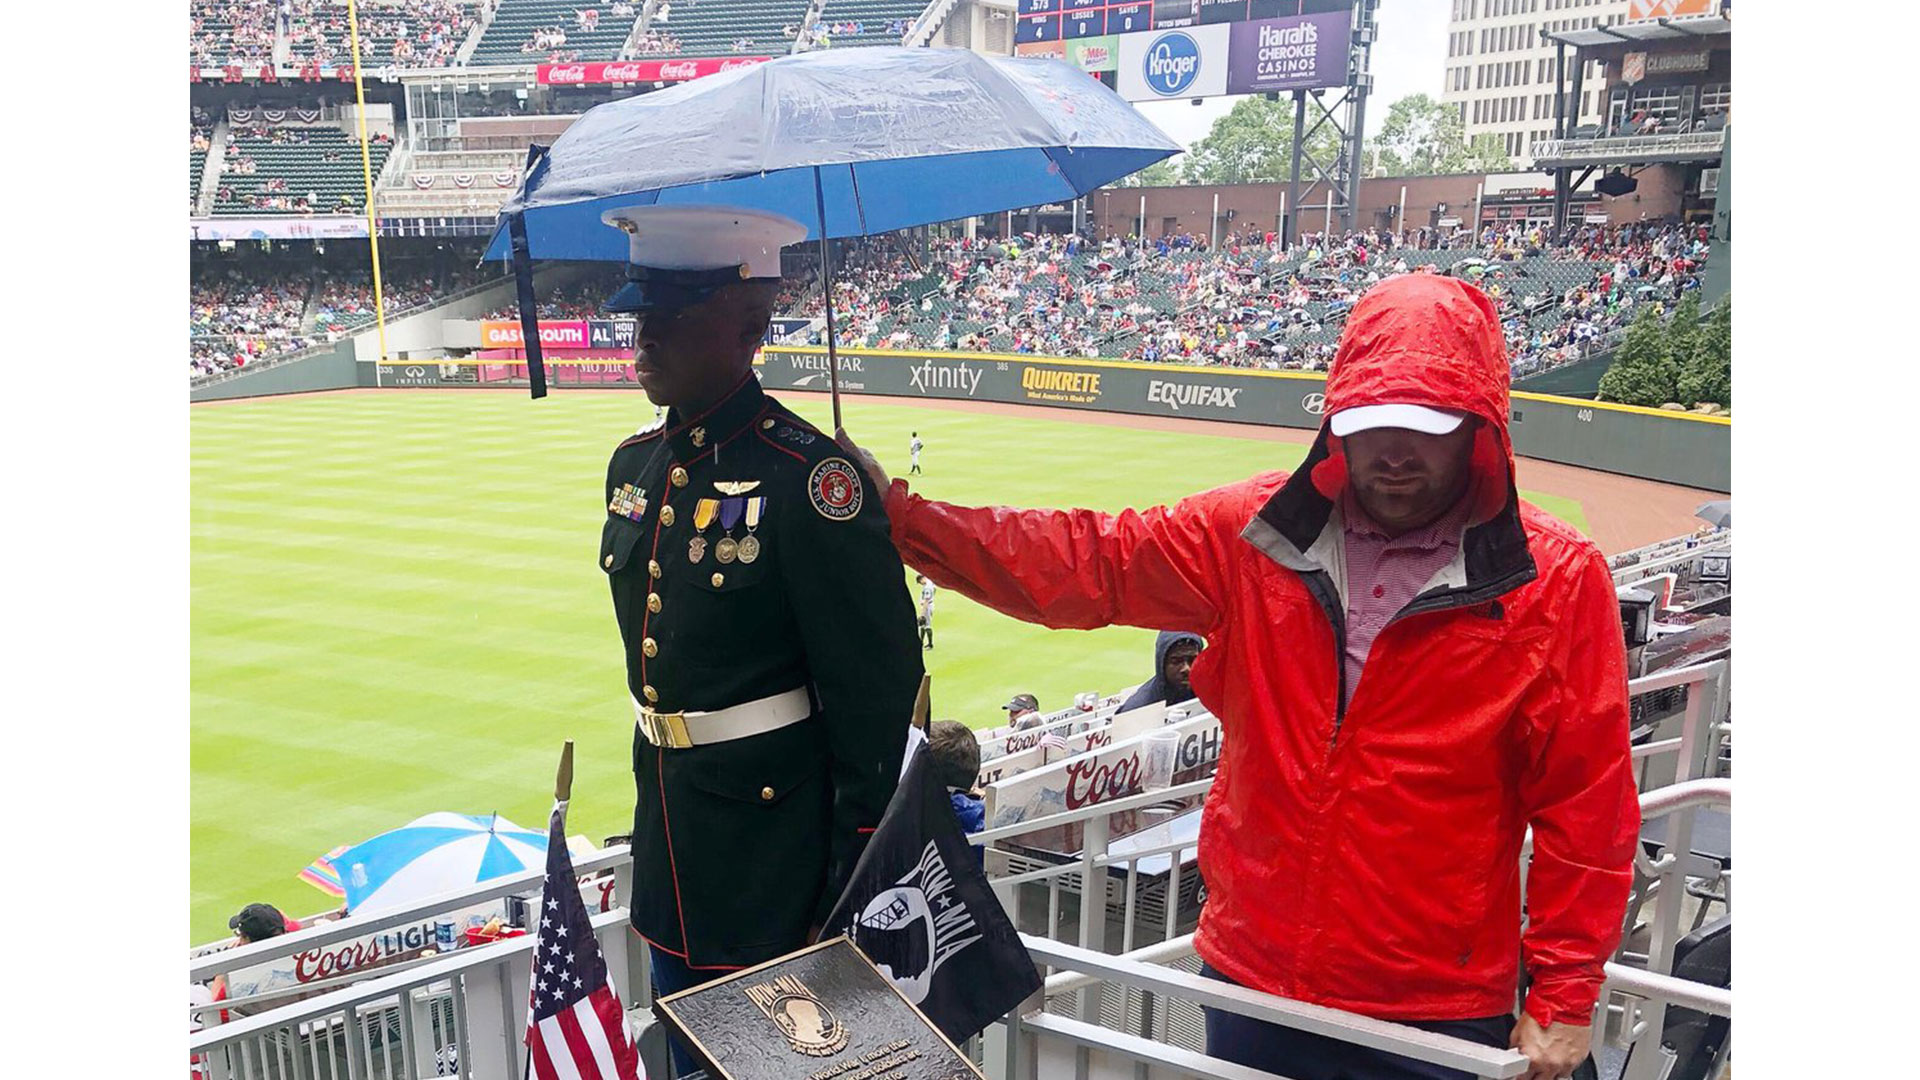 Moving Photo of Braves Fan Holding Umbrella for Marine Corps Junior ROTC Cadet Goes Viral